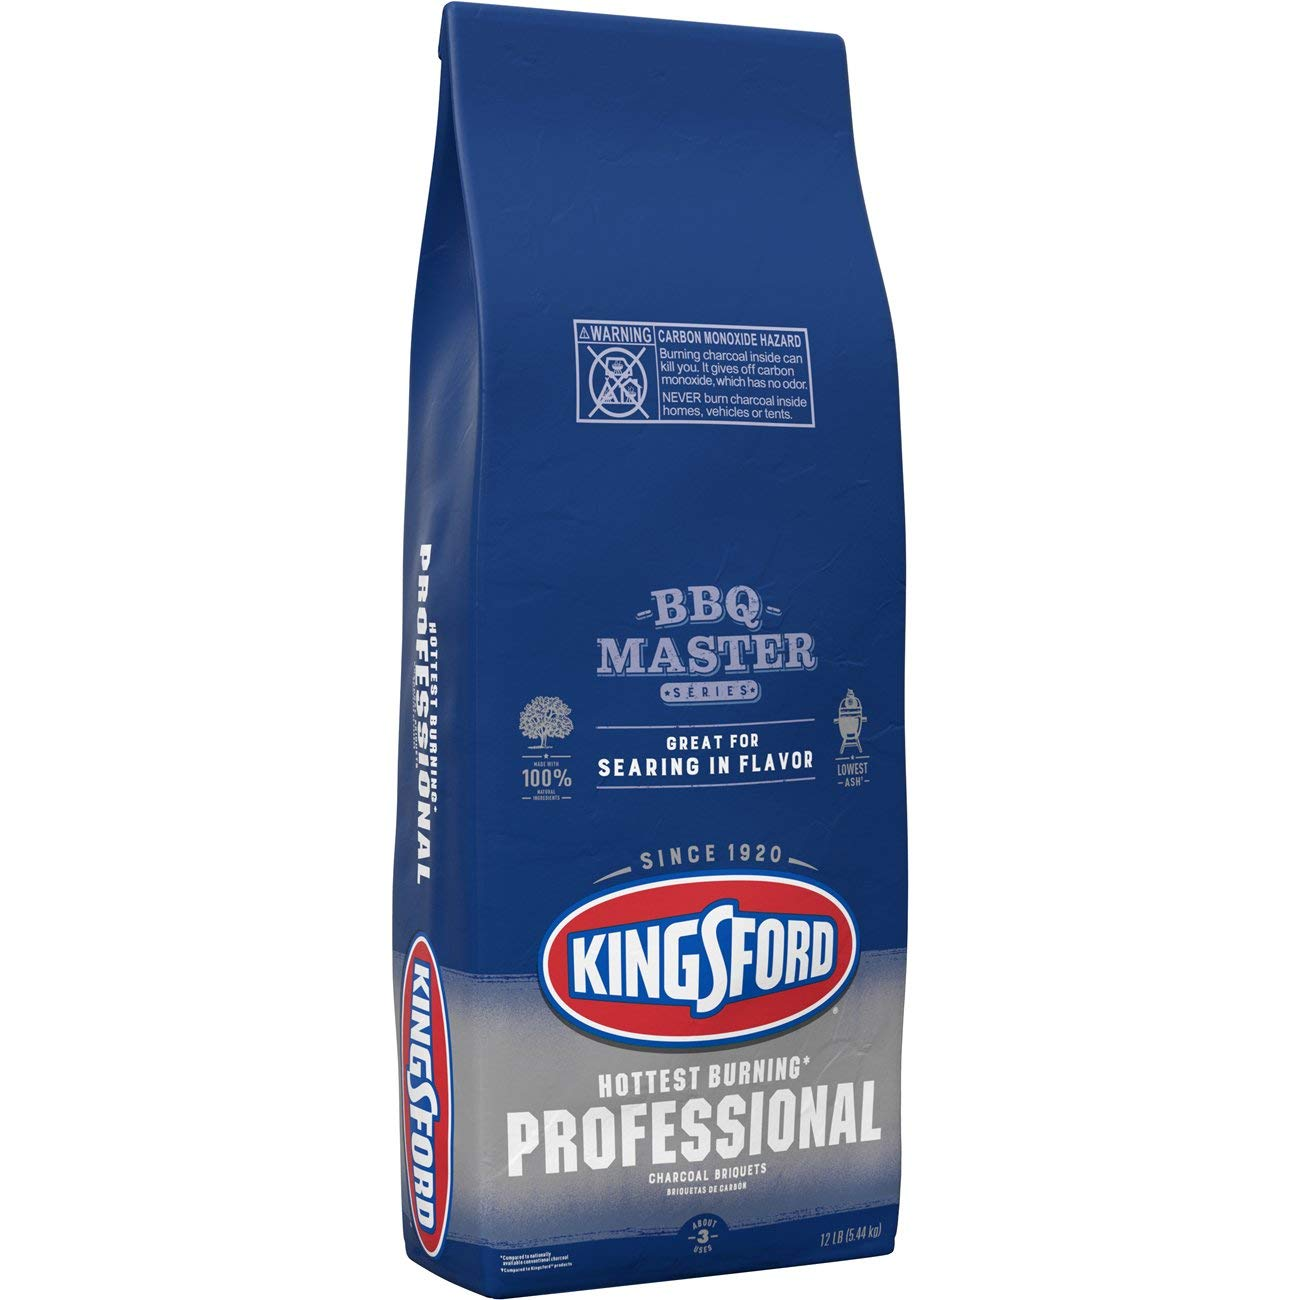 Kingsford Charcoal Professional Briquettes, 12 Pounds by Clorox